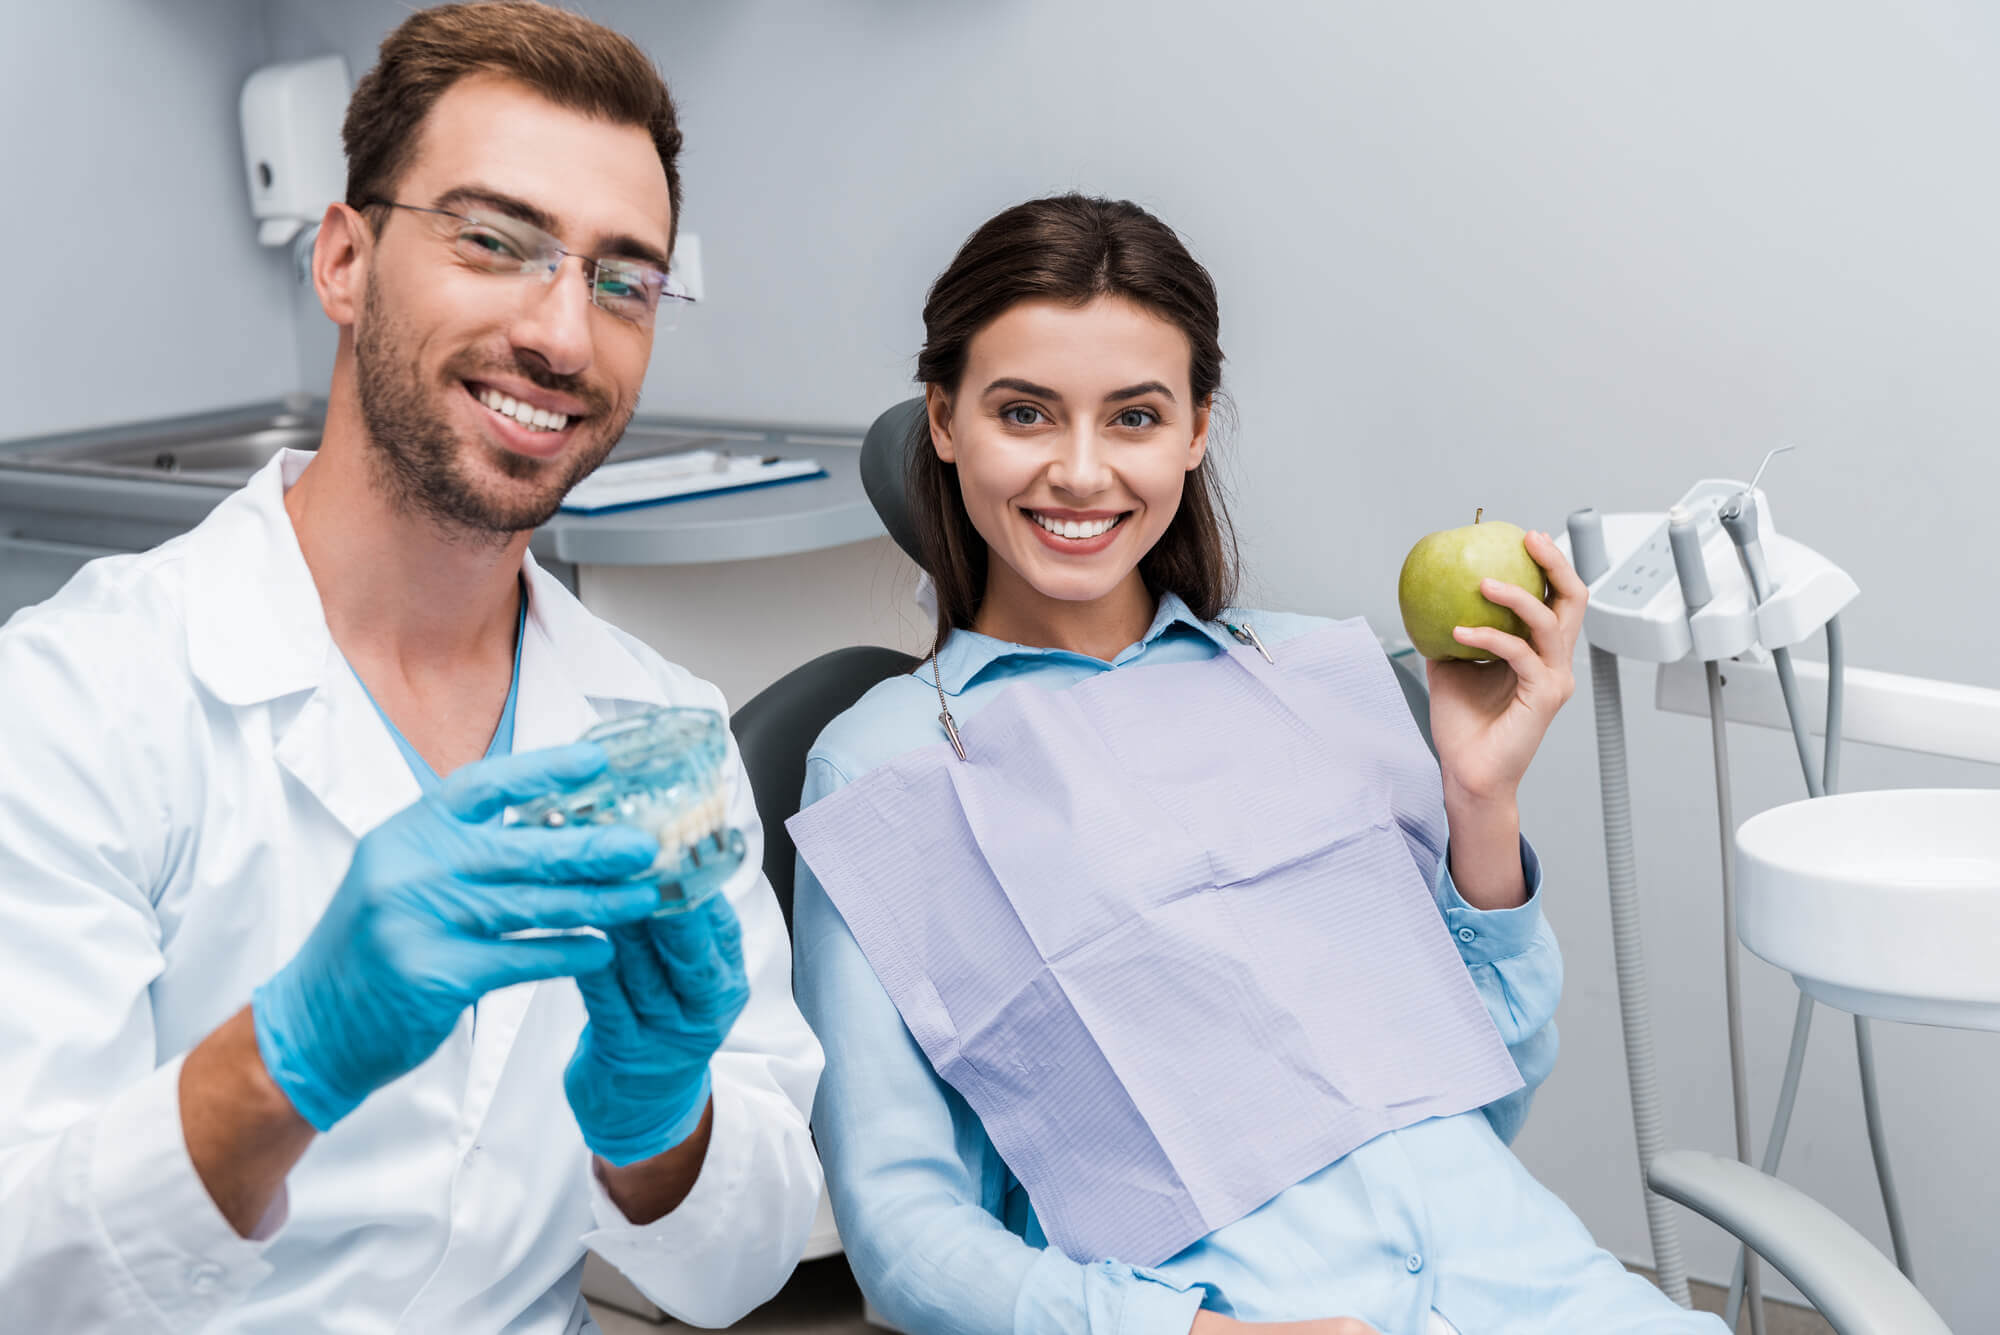 Where can I find an Orthodontist North Miami?